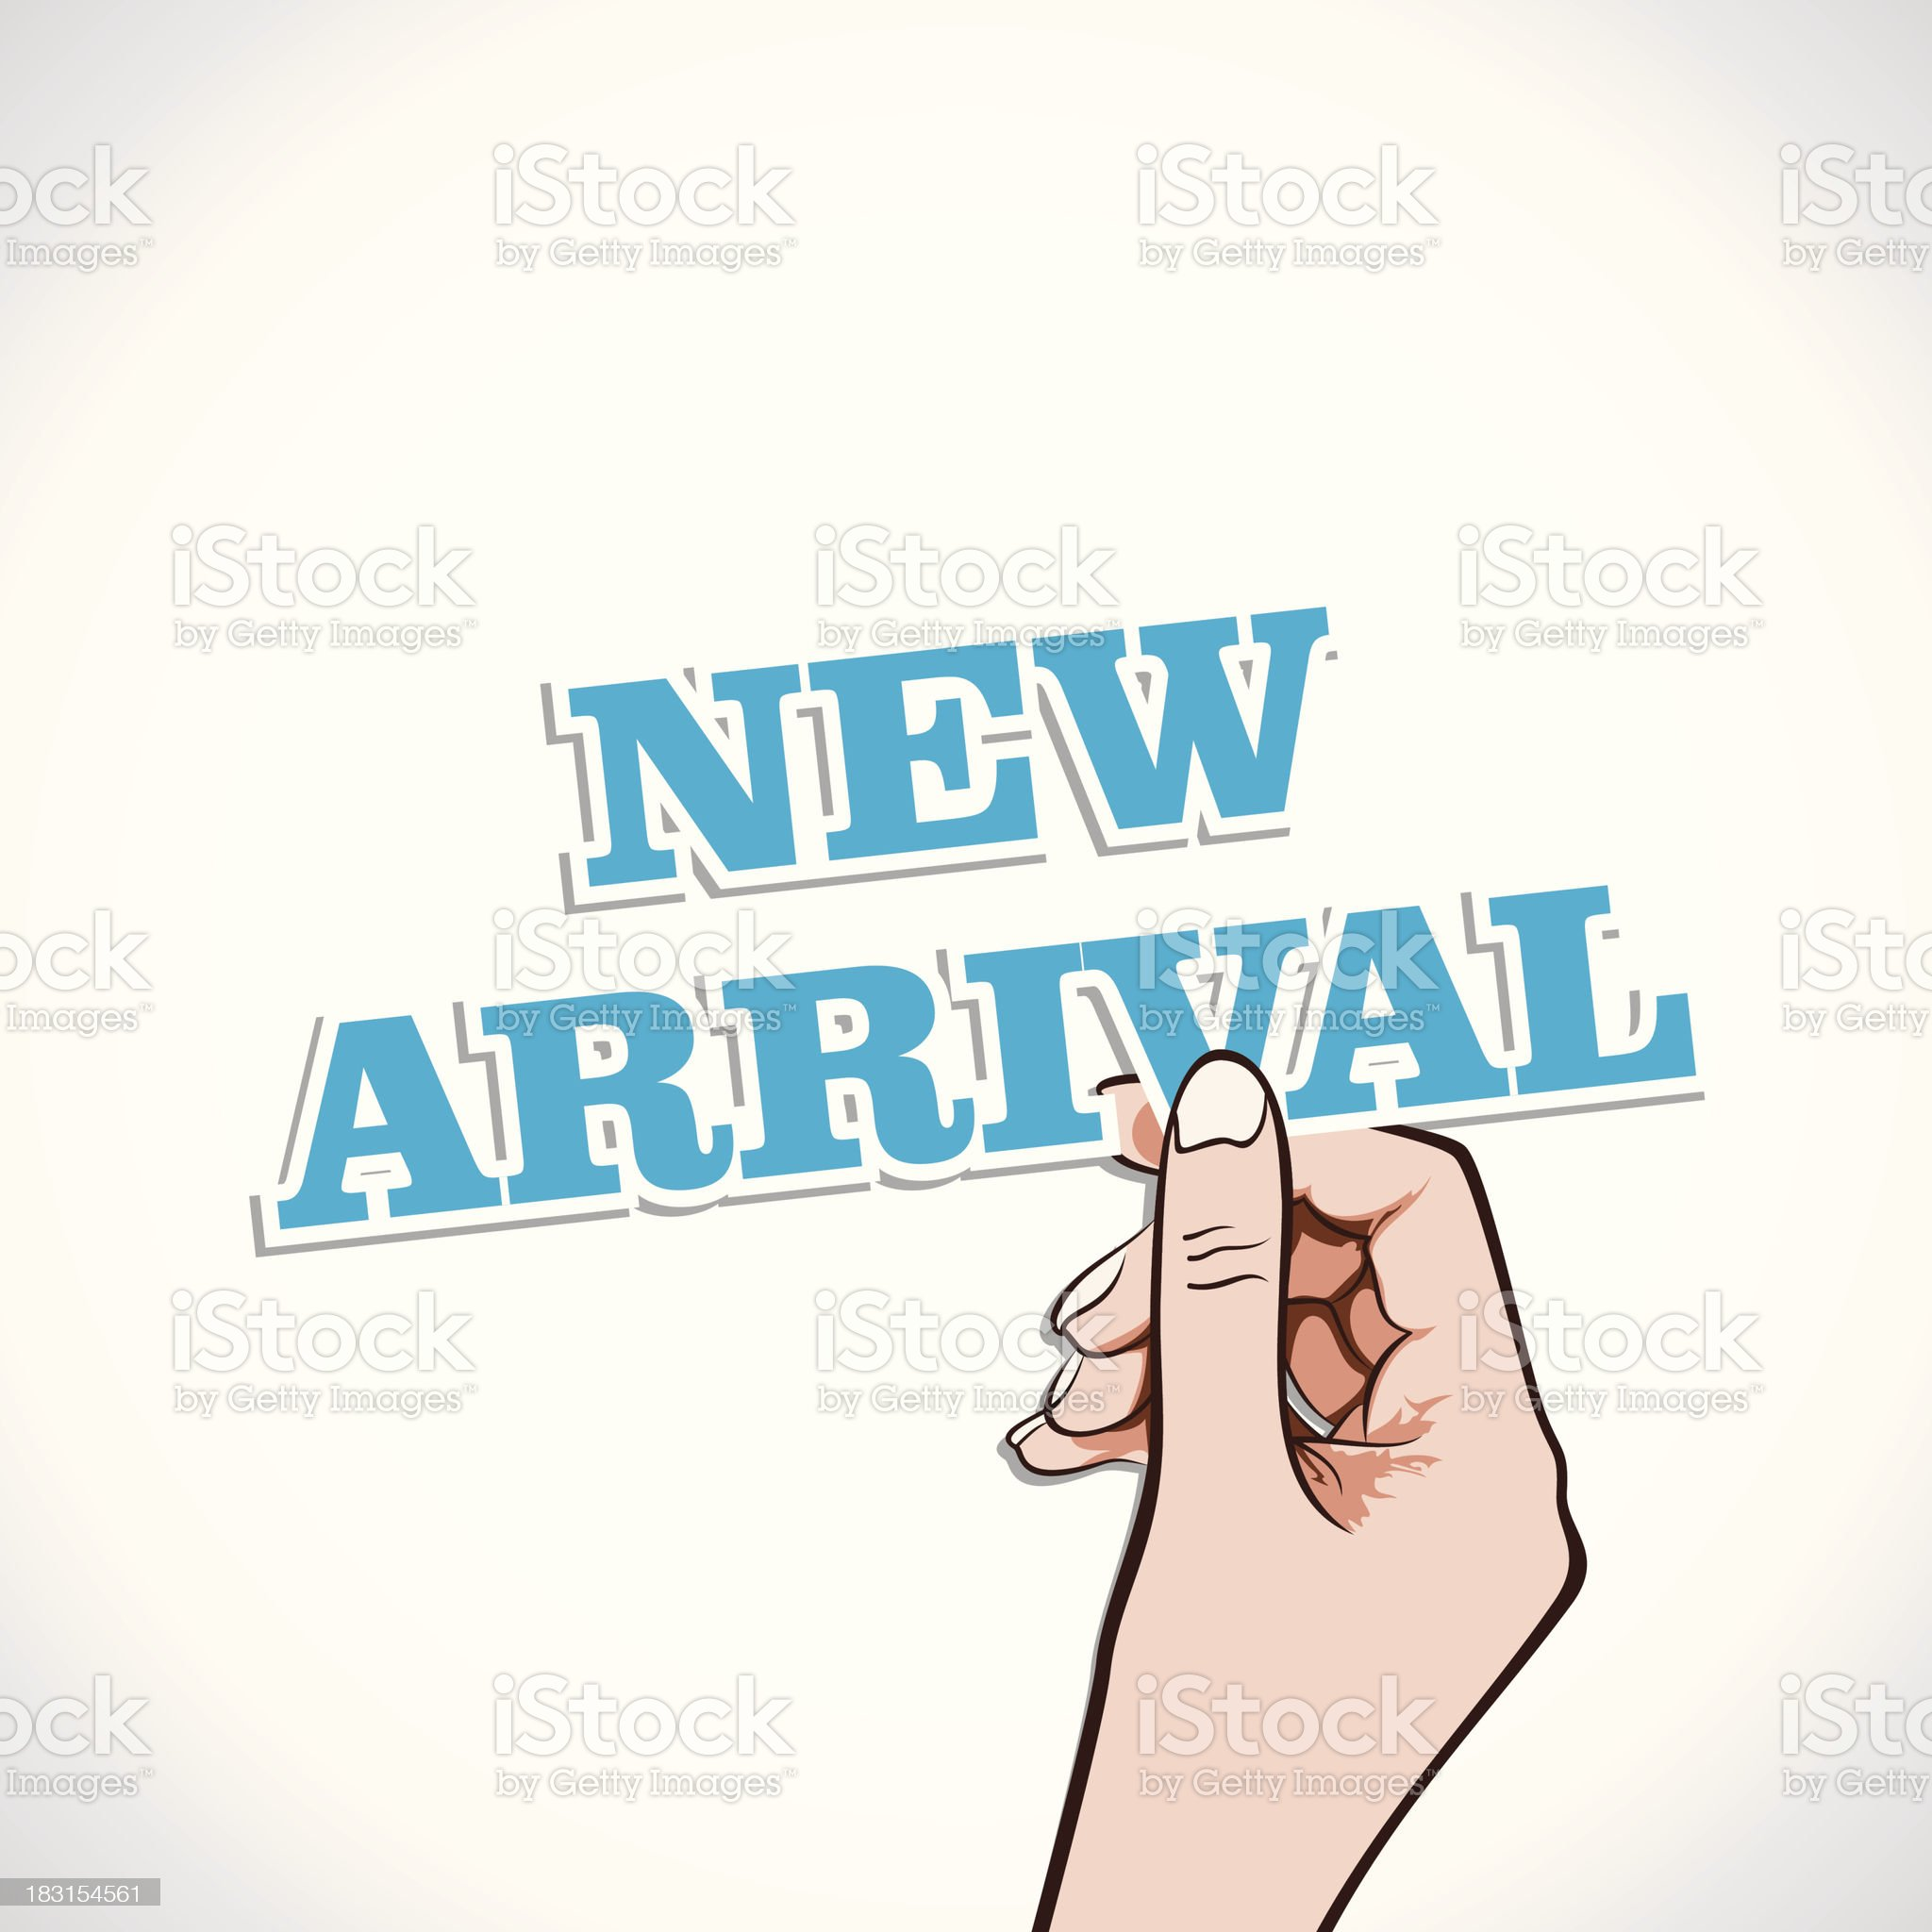 new arrival royalty-free stock vector art